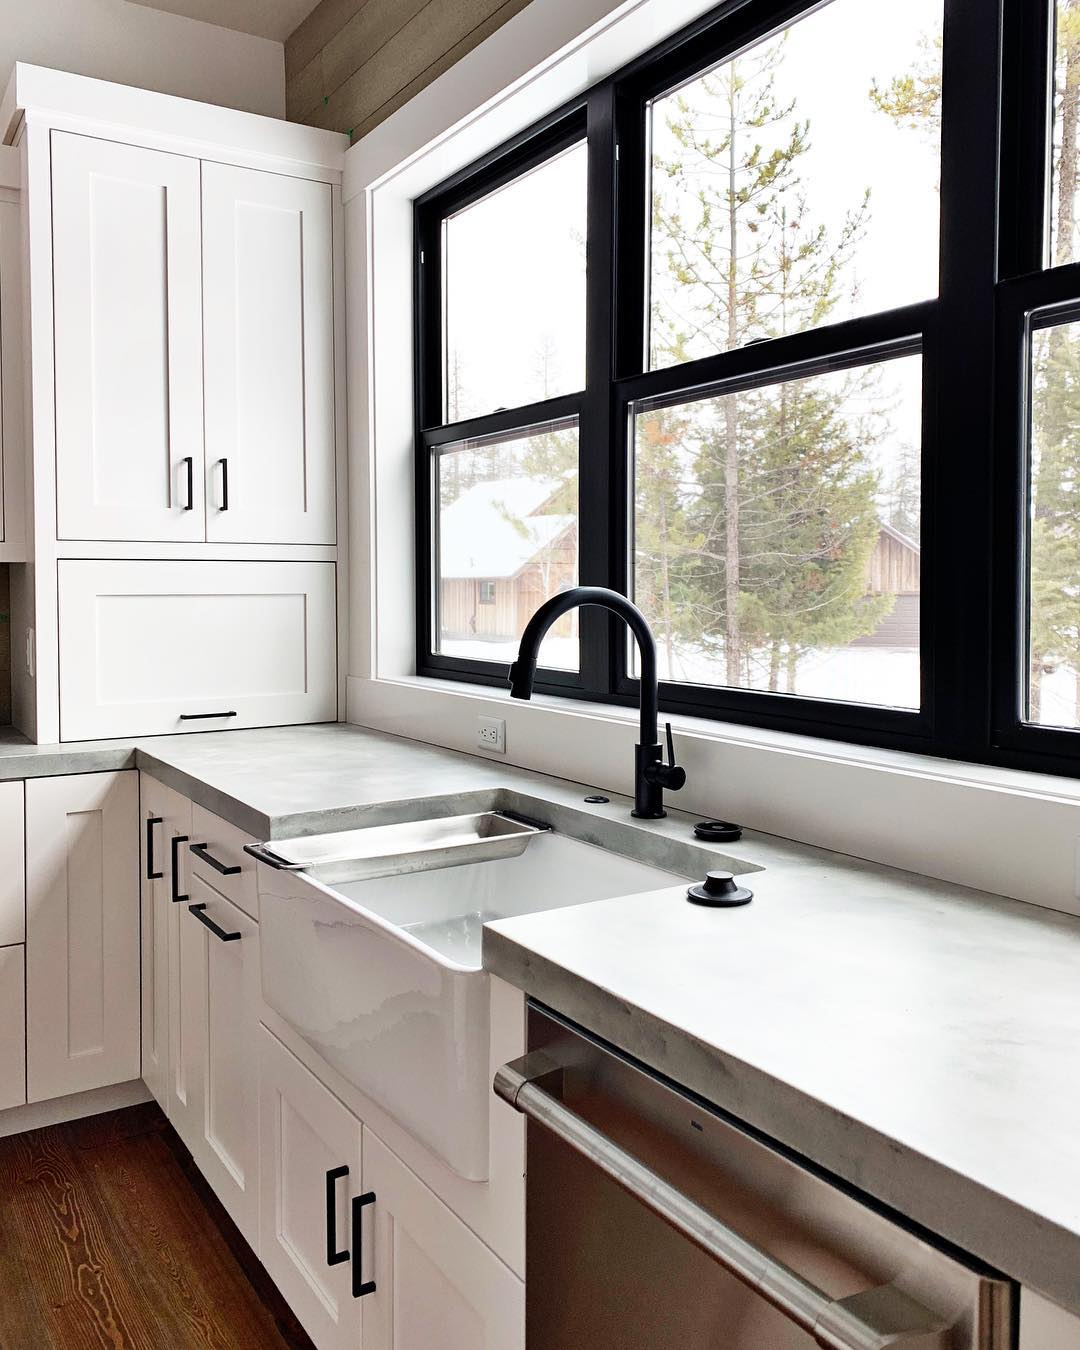 Modern farmhouse...don't you love those concrete countertops?? I have them in my own house and I've loved them ️ @awiwoodworks whitefish custom home builder